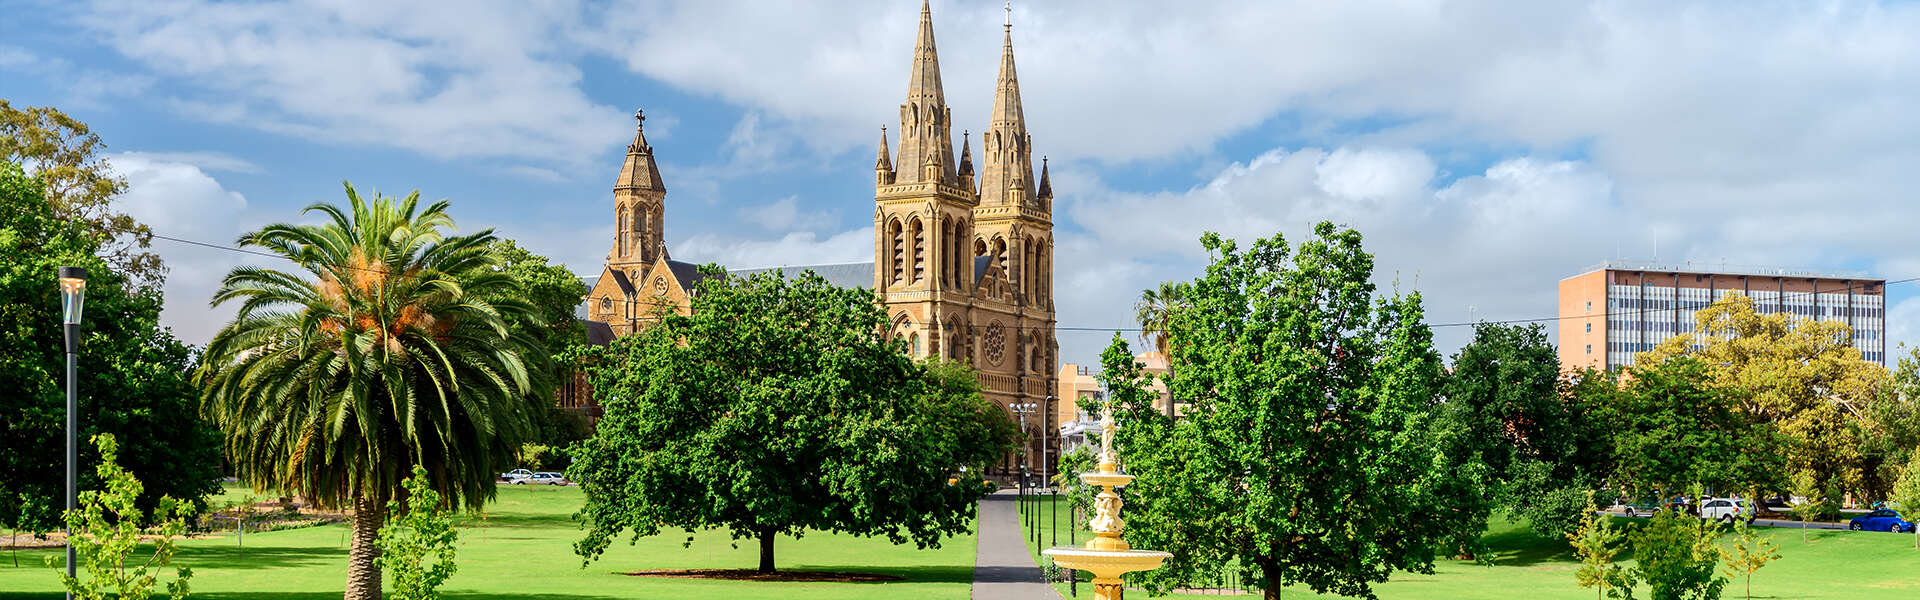 St. Peter Cathedral in Adelaide city Patwhay to Aus